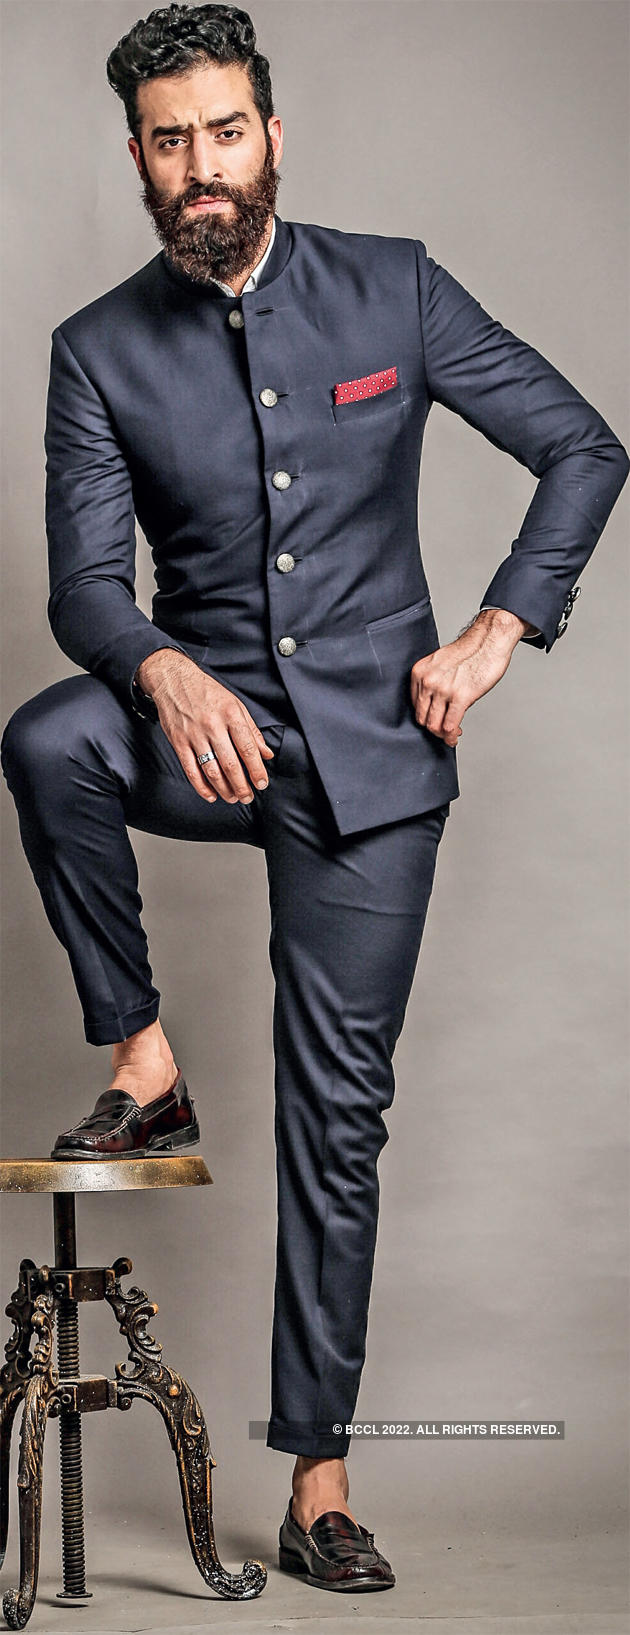 How Niche Menswear Brands Are Upping The Fashion Game The Economic Times